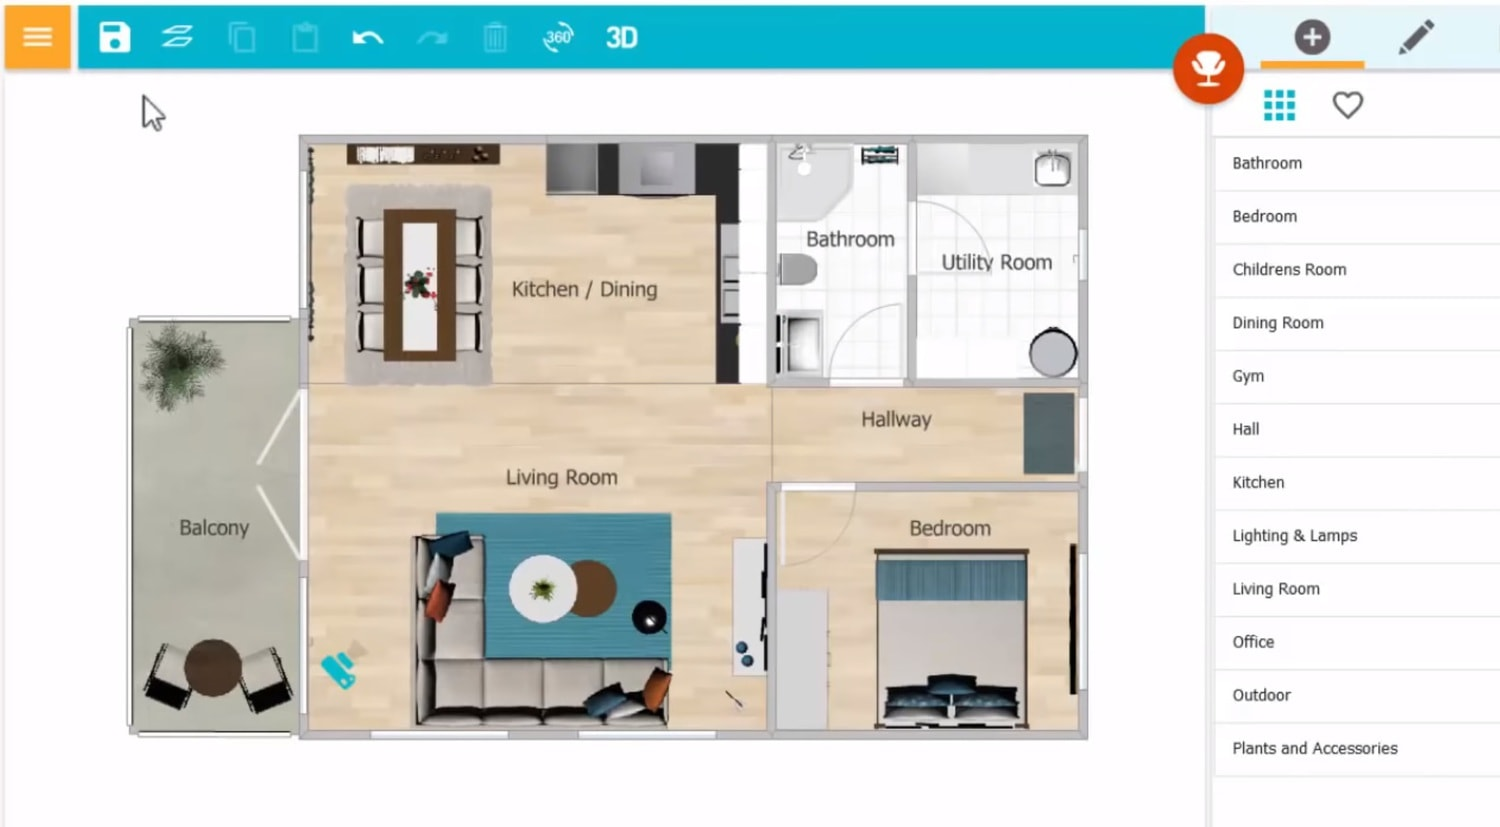 online room layout tool interface